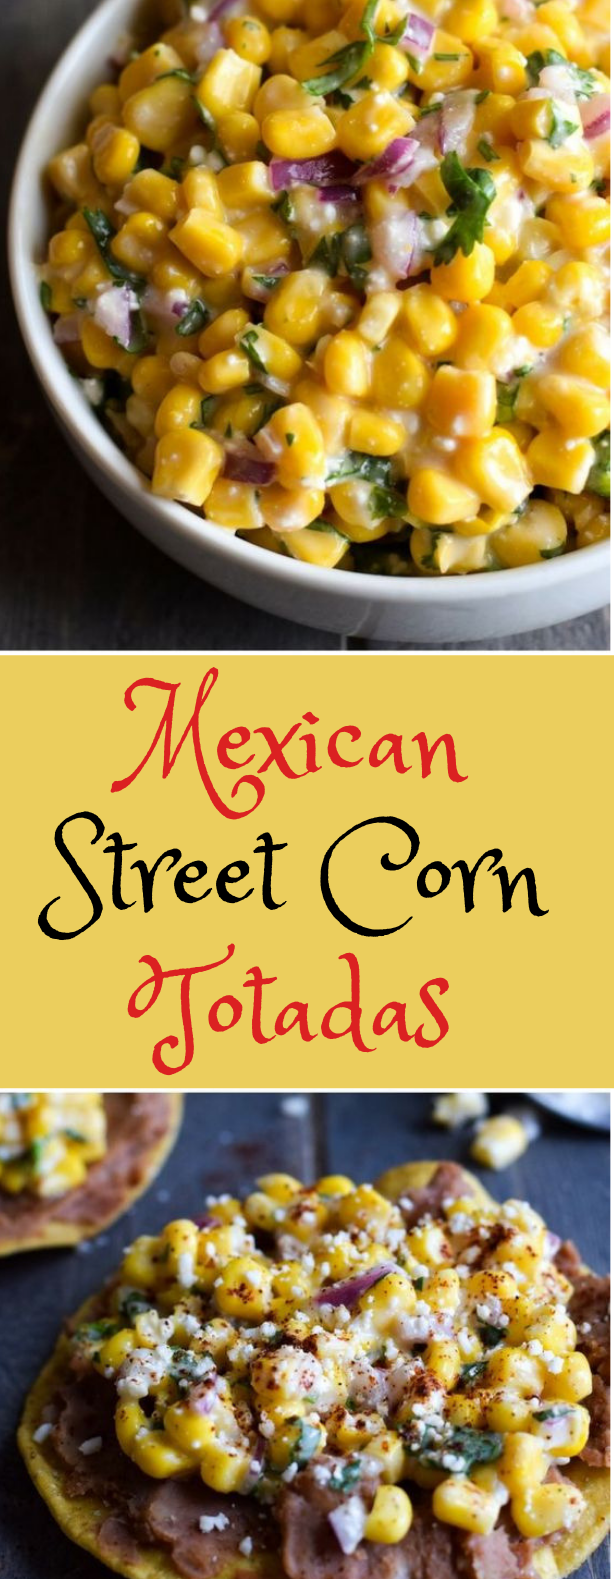 Mexican Street Corn Tostadas #corn #vegetarian #mexicanshrimprecipes